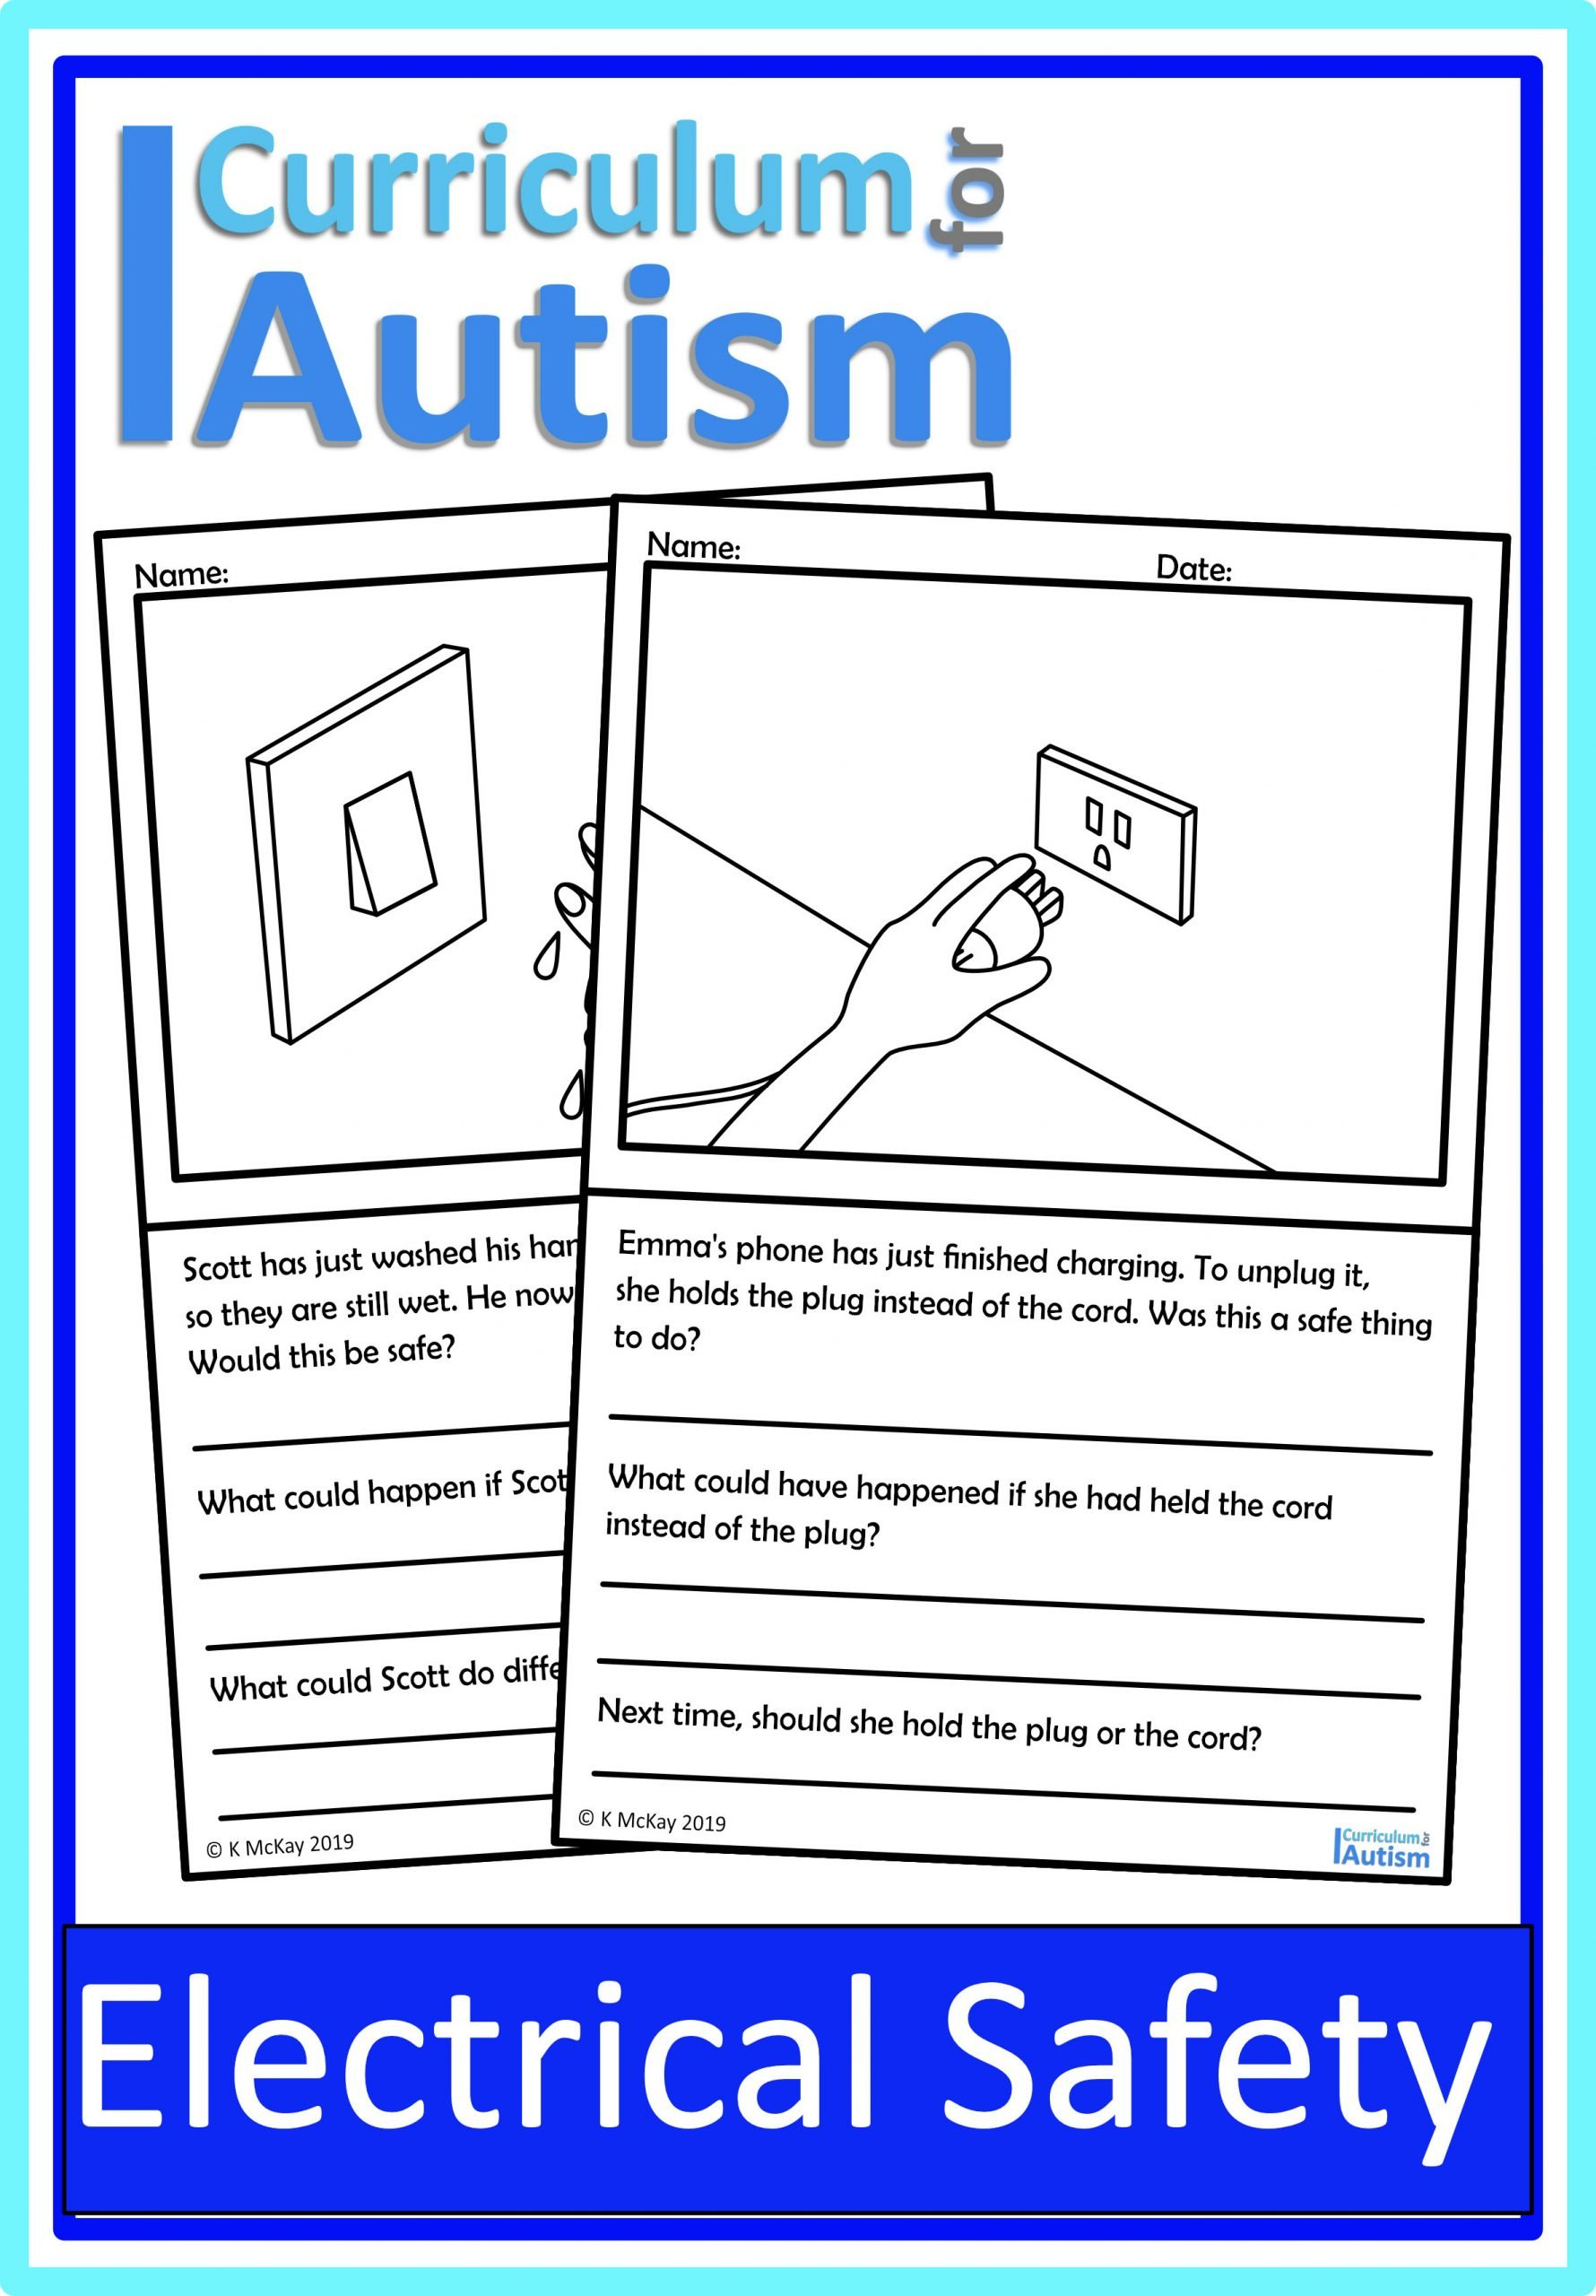 Social Skills Worksheets for Autism Electrical Safety Life Skills Worksheets — Curriculum for Autism